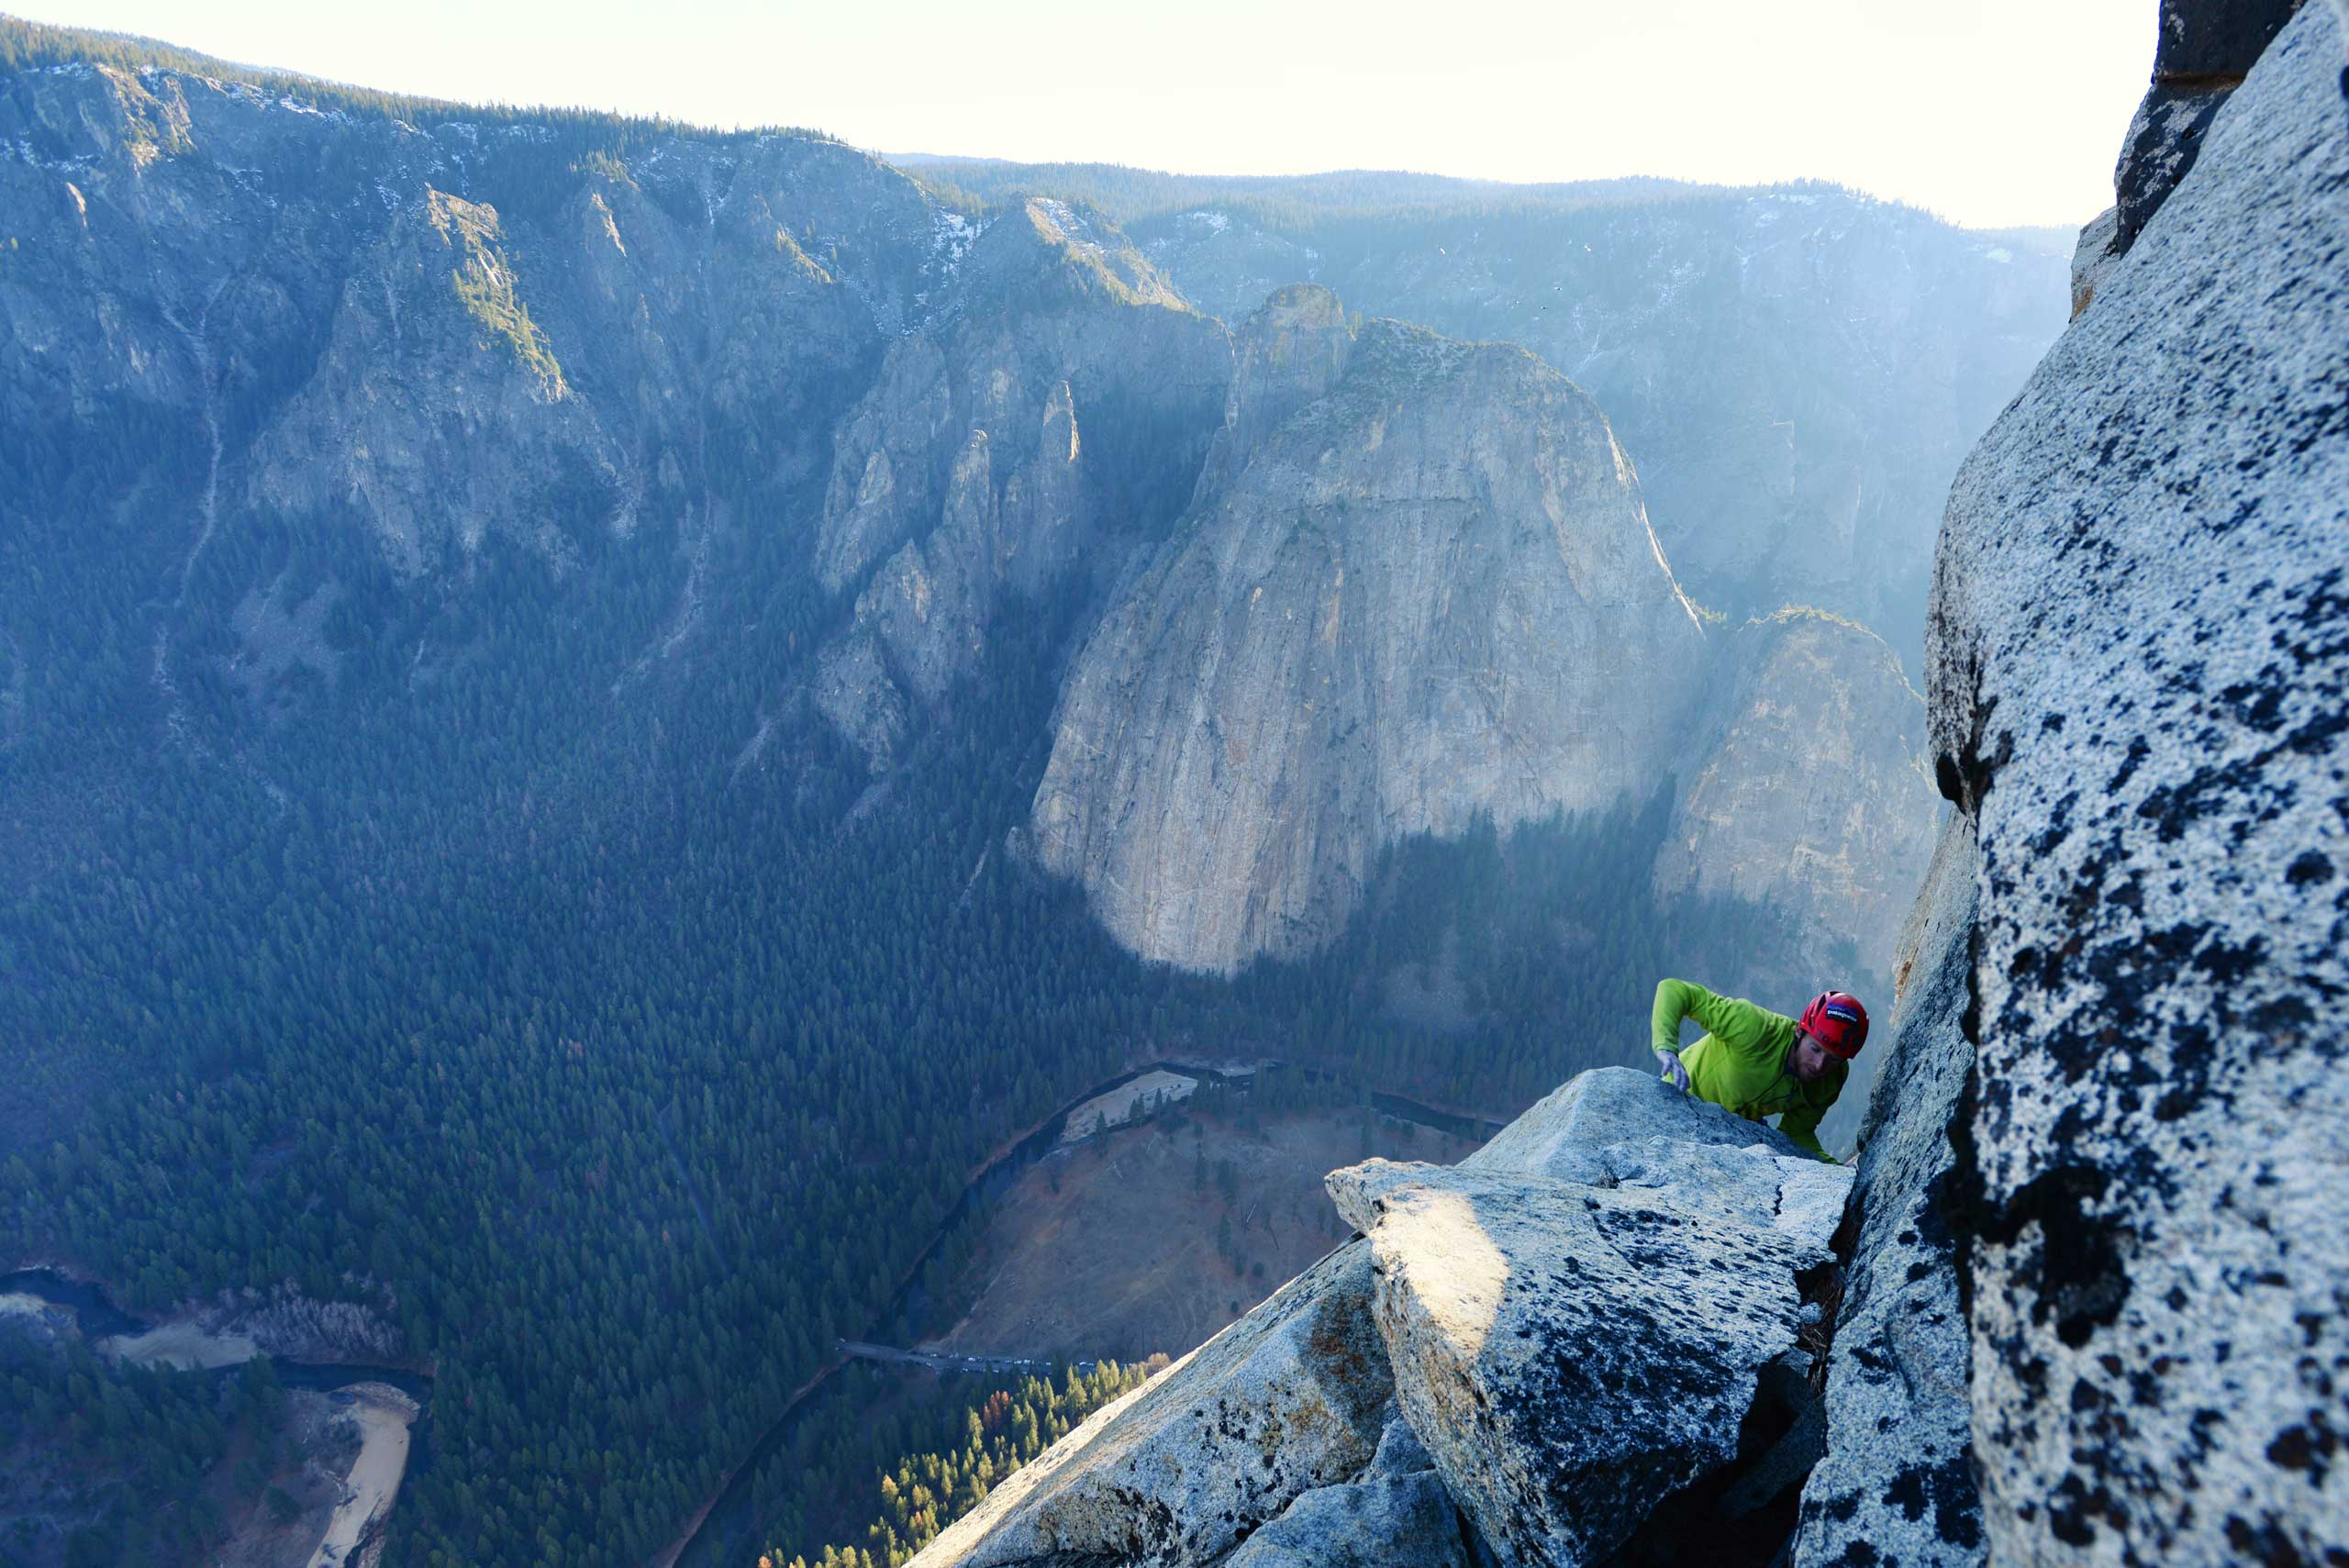 Jan. 14, 2015. Tommy Caldwell completing the historic free climb to the top of El Capitan's Dawn Wall, a 3,000-foot sheer granite face in Yosemite National Park, Calif.